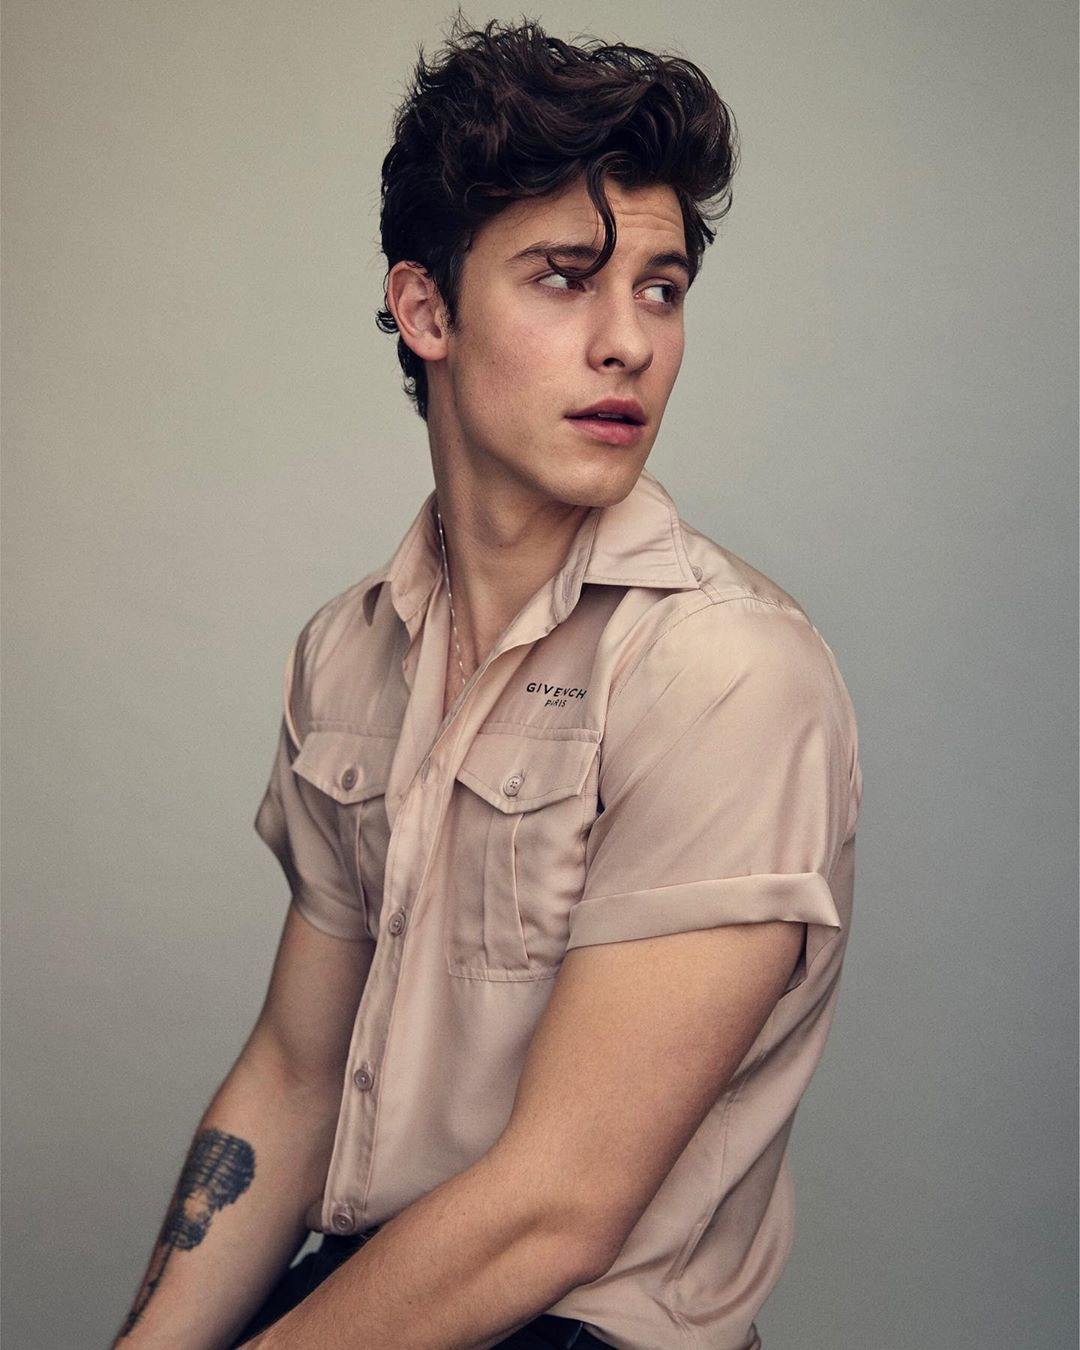 Hq Photos Of Shawn For Observer Magazine Shawn Shawn Mendes Shawn Mendes Wallpaper